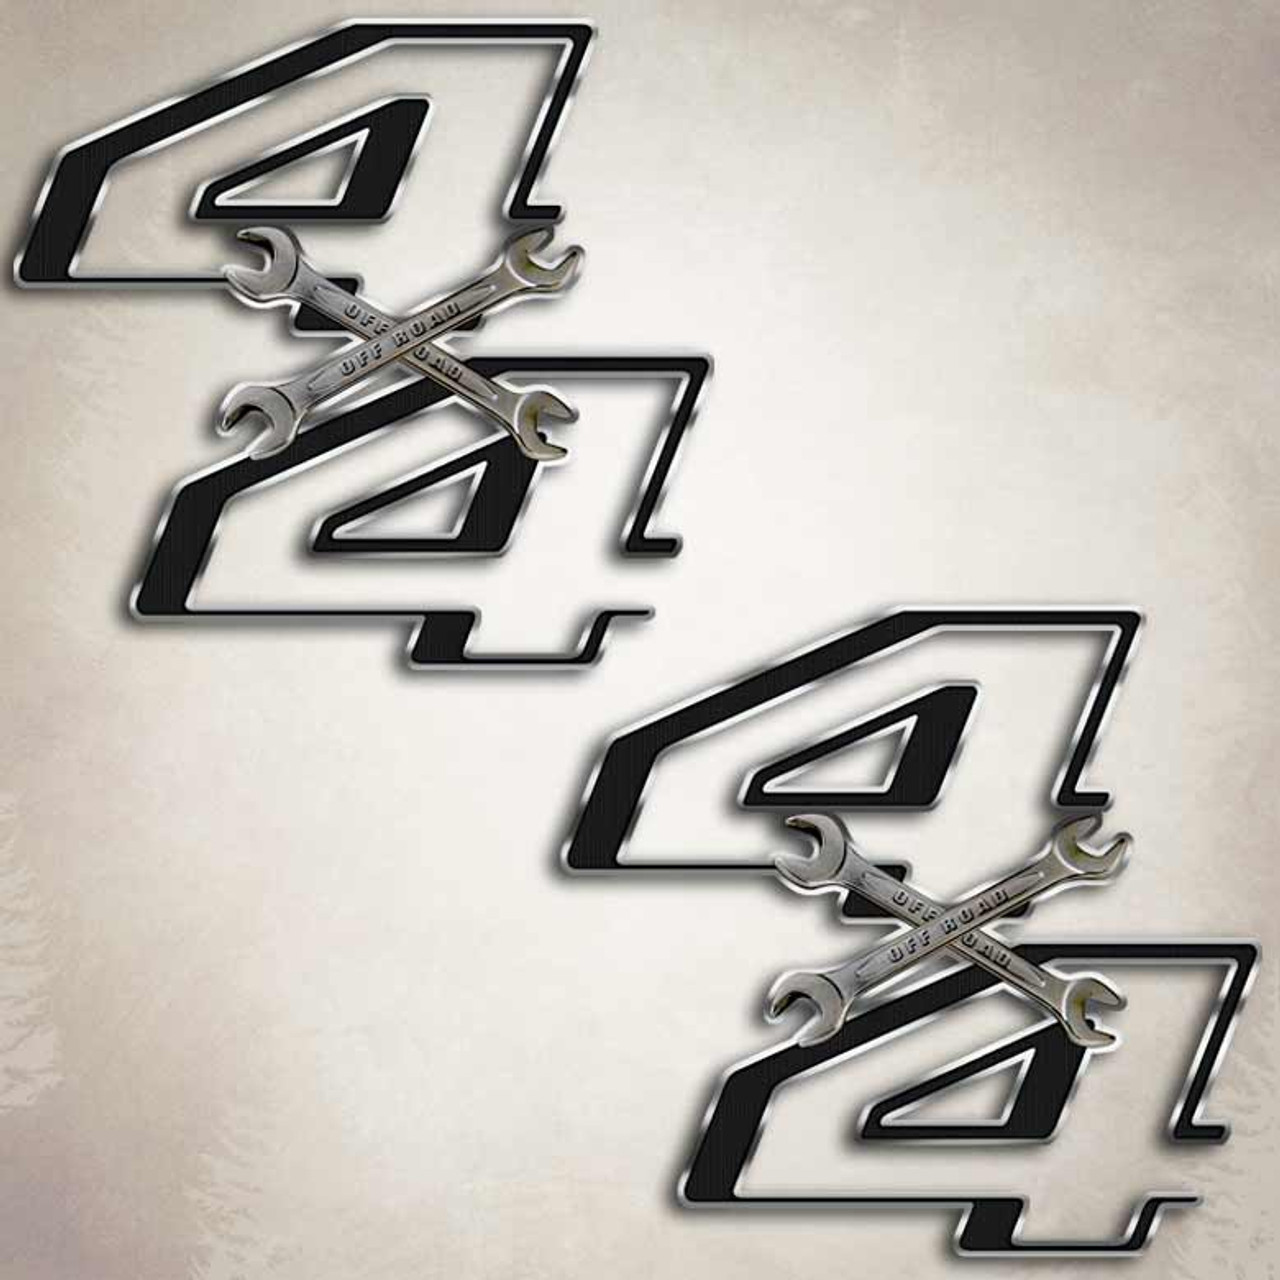 F 250 Wrench Cross F 350 Ford Mechanic Truck Decals